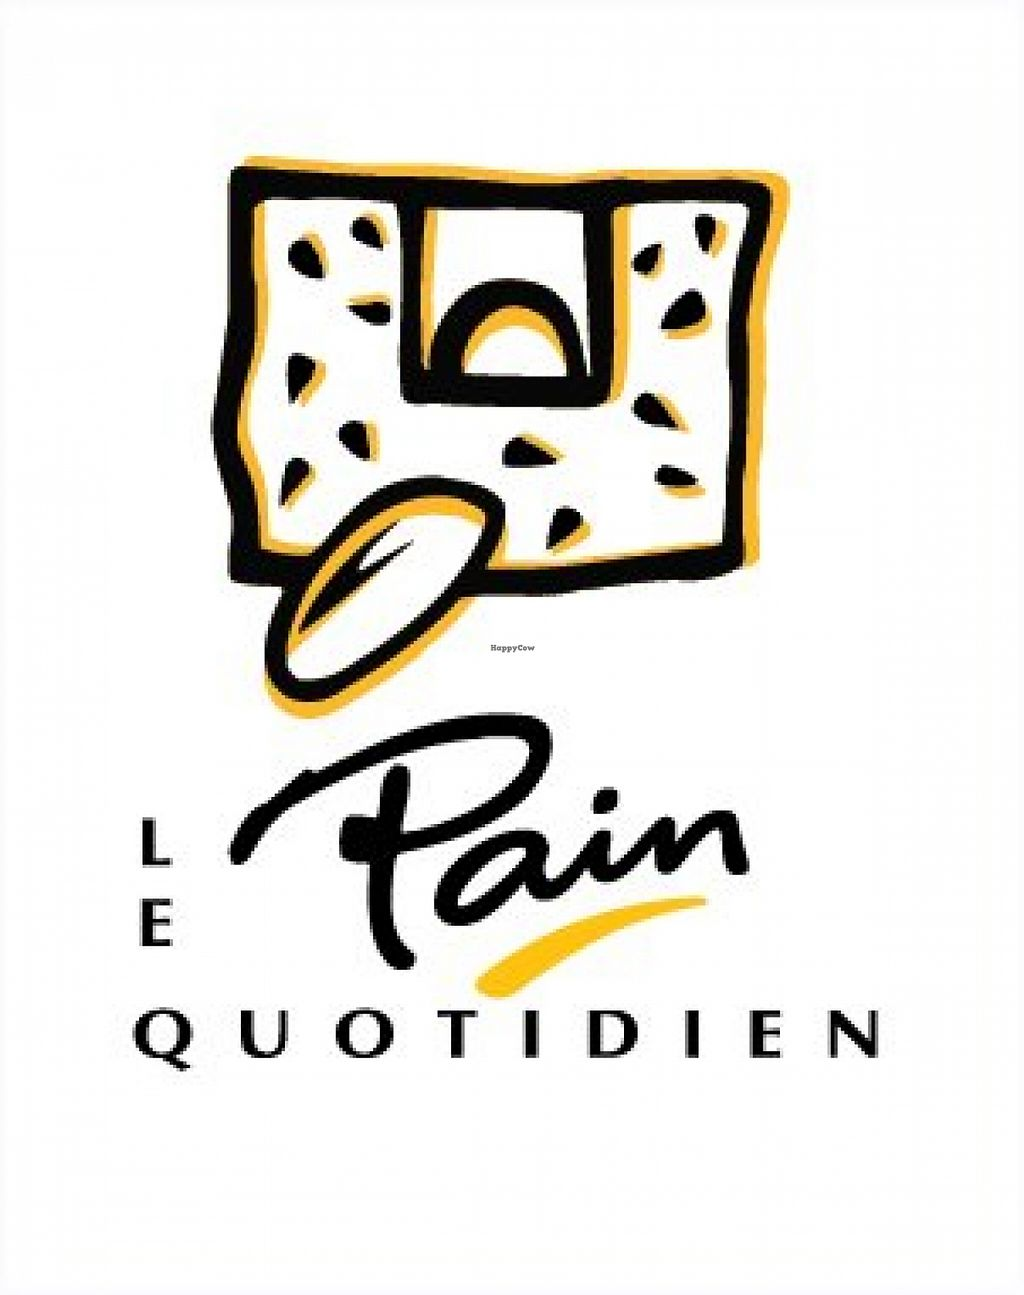 """Photo of Le Pain Quotidien - Tongres  by <a href=""""/members/profile/community"""">community</a> <br/>Le Pain Quotidien <br/> February 29, 2016  - <a href='/contact/abuse/image/70294/138188'>Report</a>"""